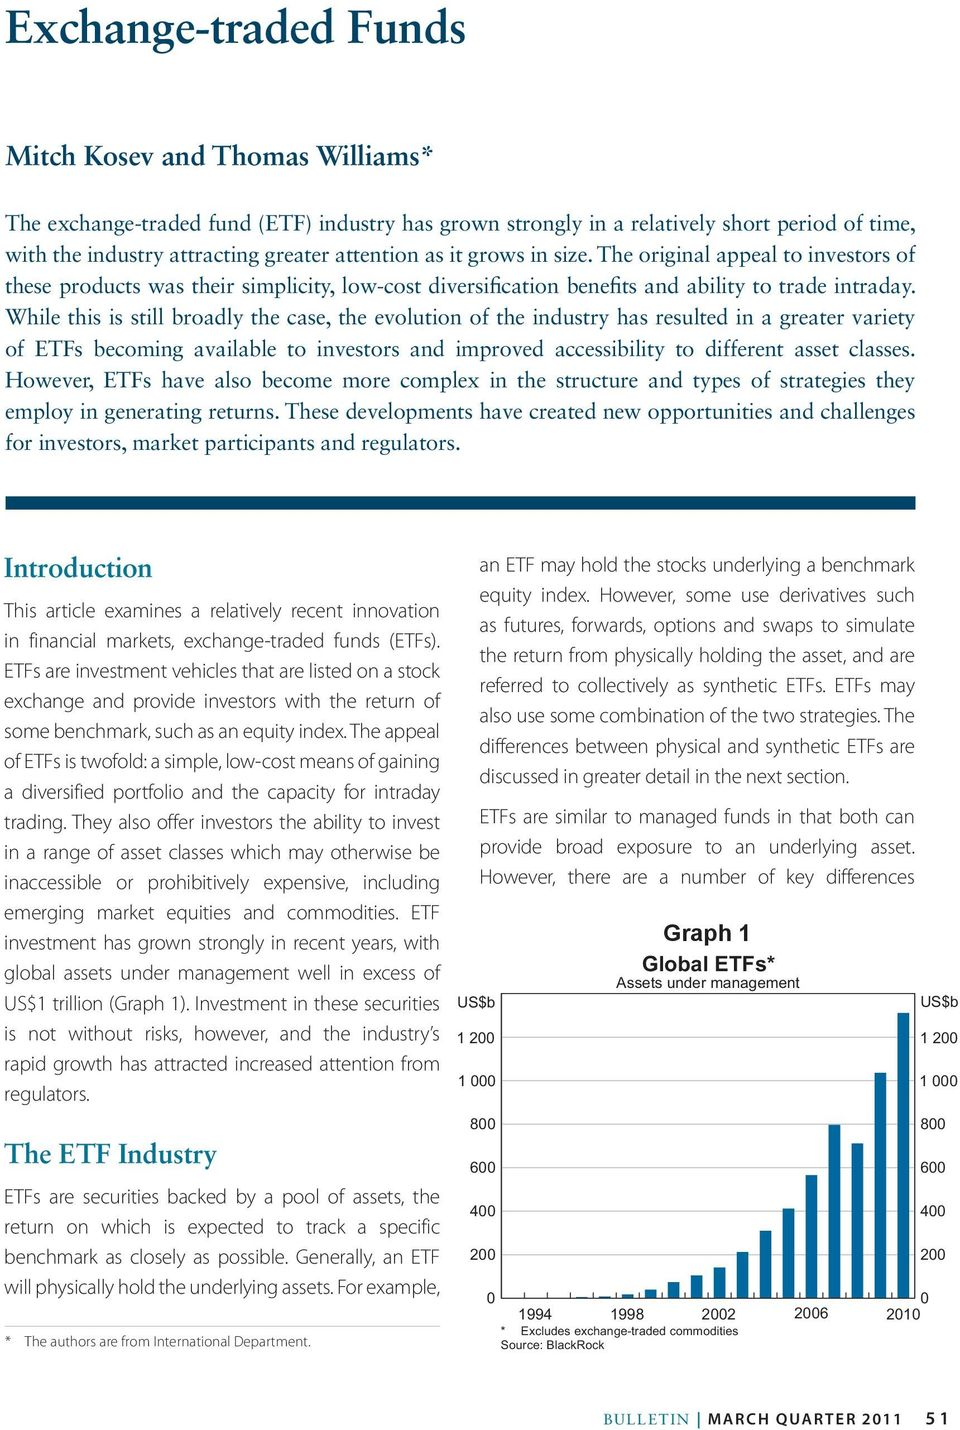 While this is still broadly the case, the evolution of the industry has resulted in a greater variety of ETFs becoming available to investors and improved accessibility to different asset classes.